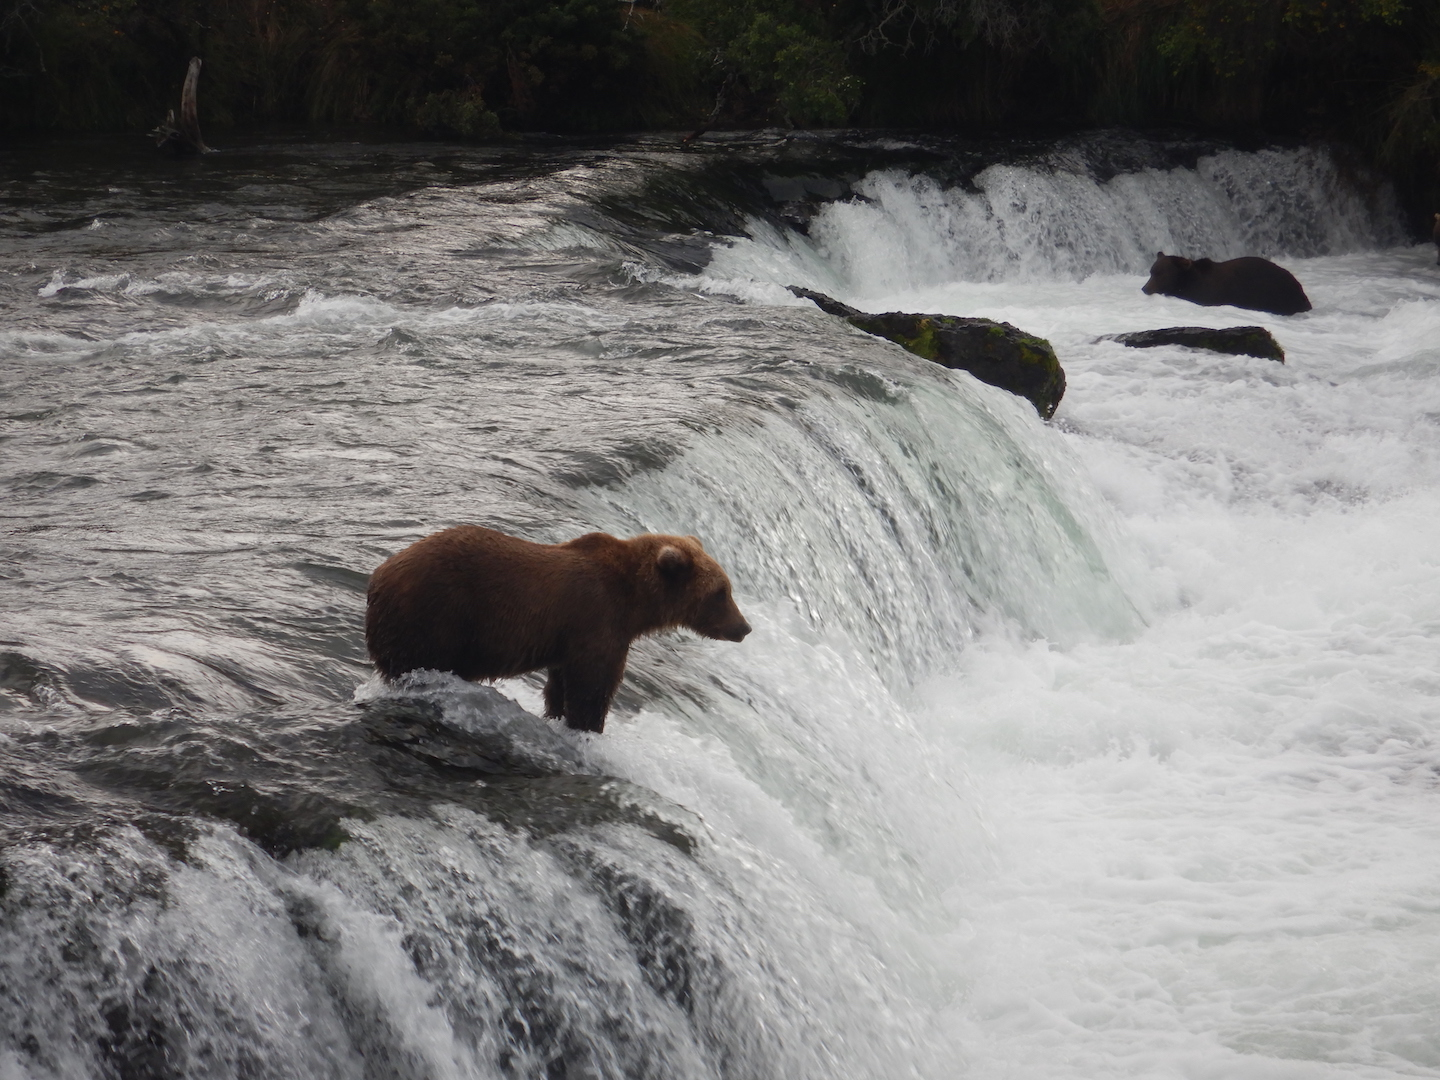 bear standing on edge of waterfall